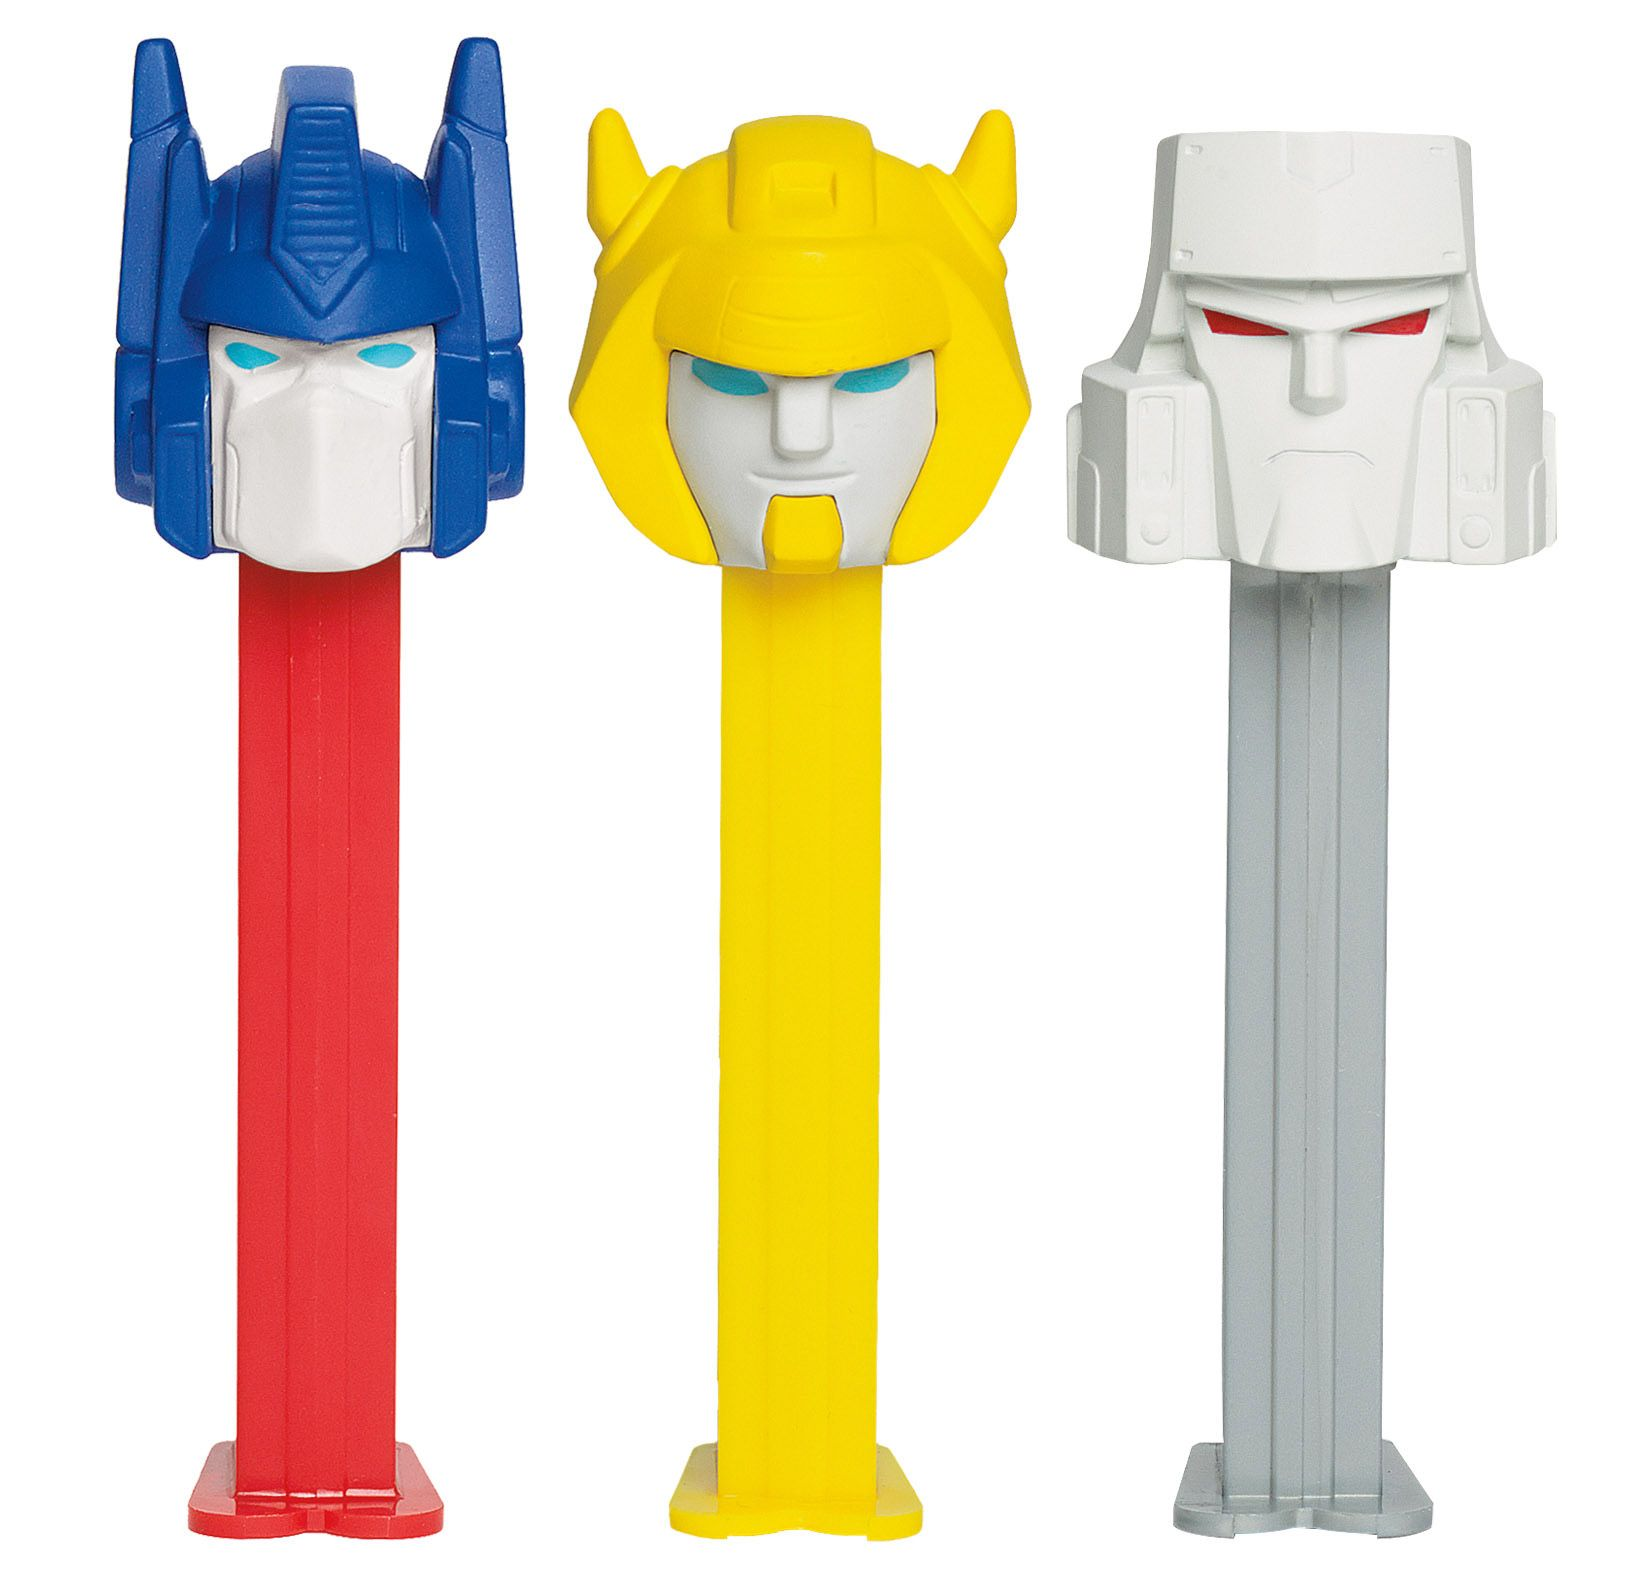 Transformers Pez Dispenser and Candy Set (Each) - Party Supplies